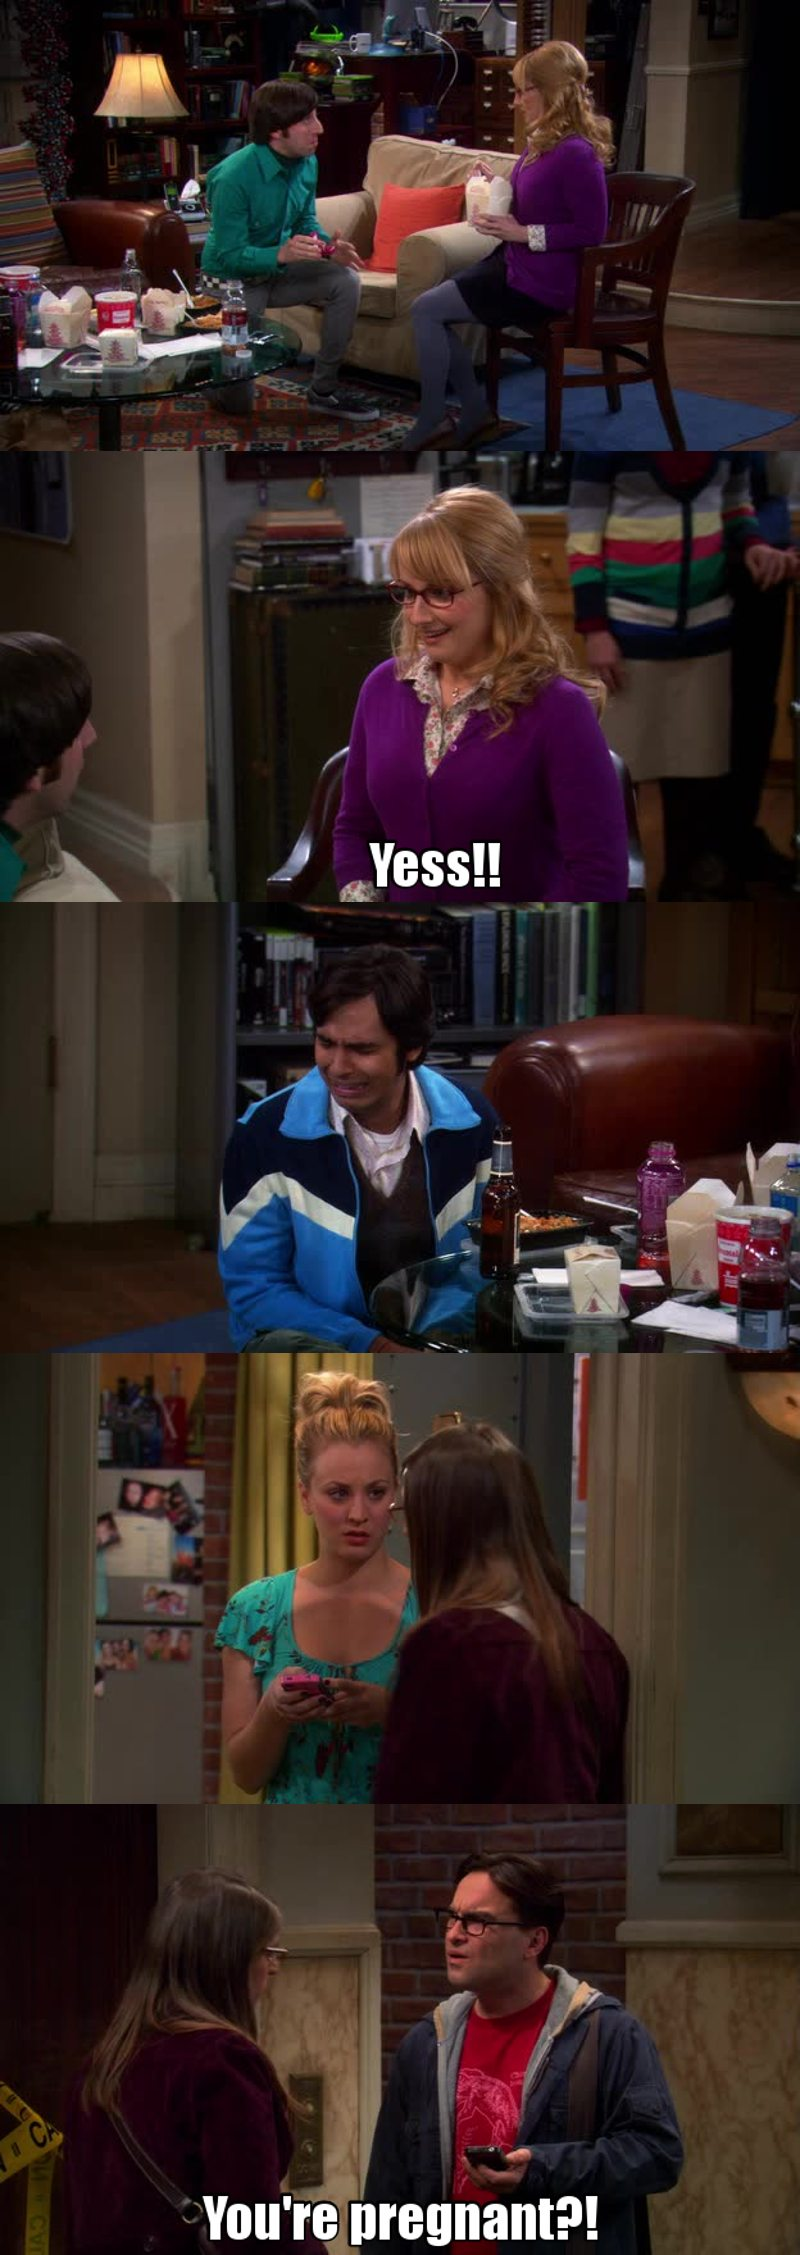 Gossips! I love Amy and Sheldon, they are making social experiments ahah